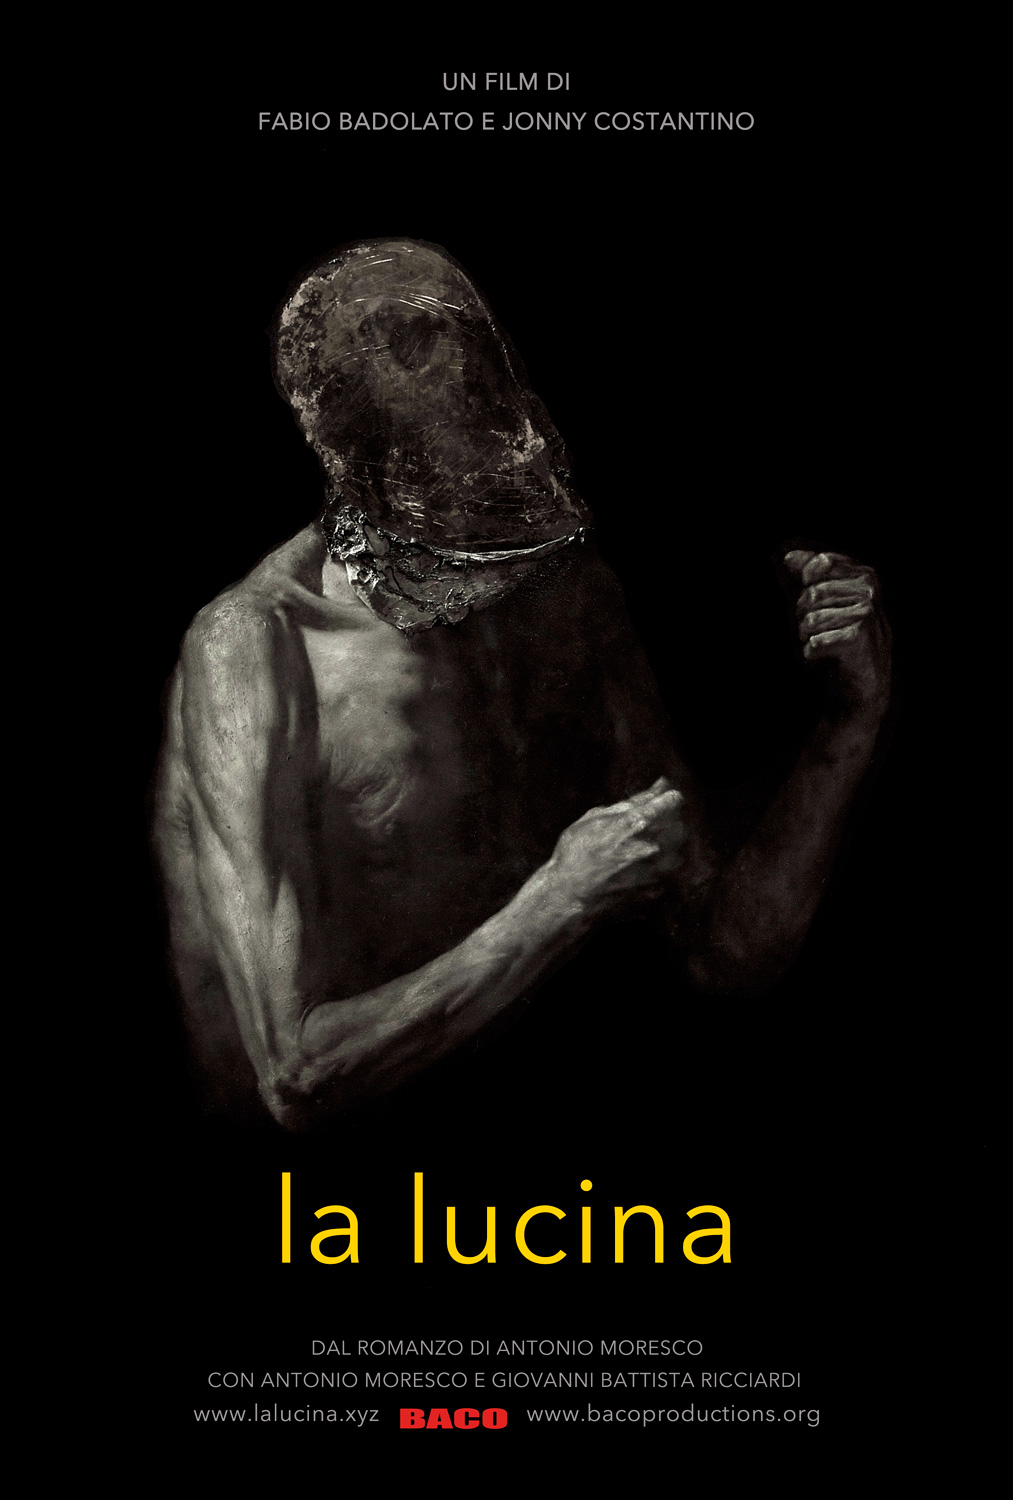 La lucina a film by Fabio Badolato and Jonny Costantino. Starring Antonio Morescco. From a painting of Nicola Samori